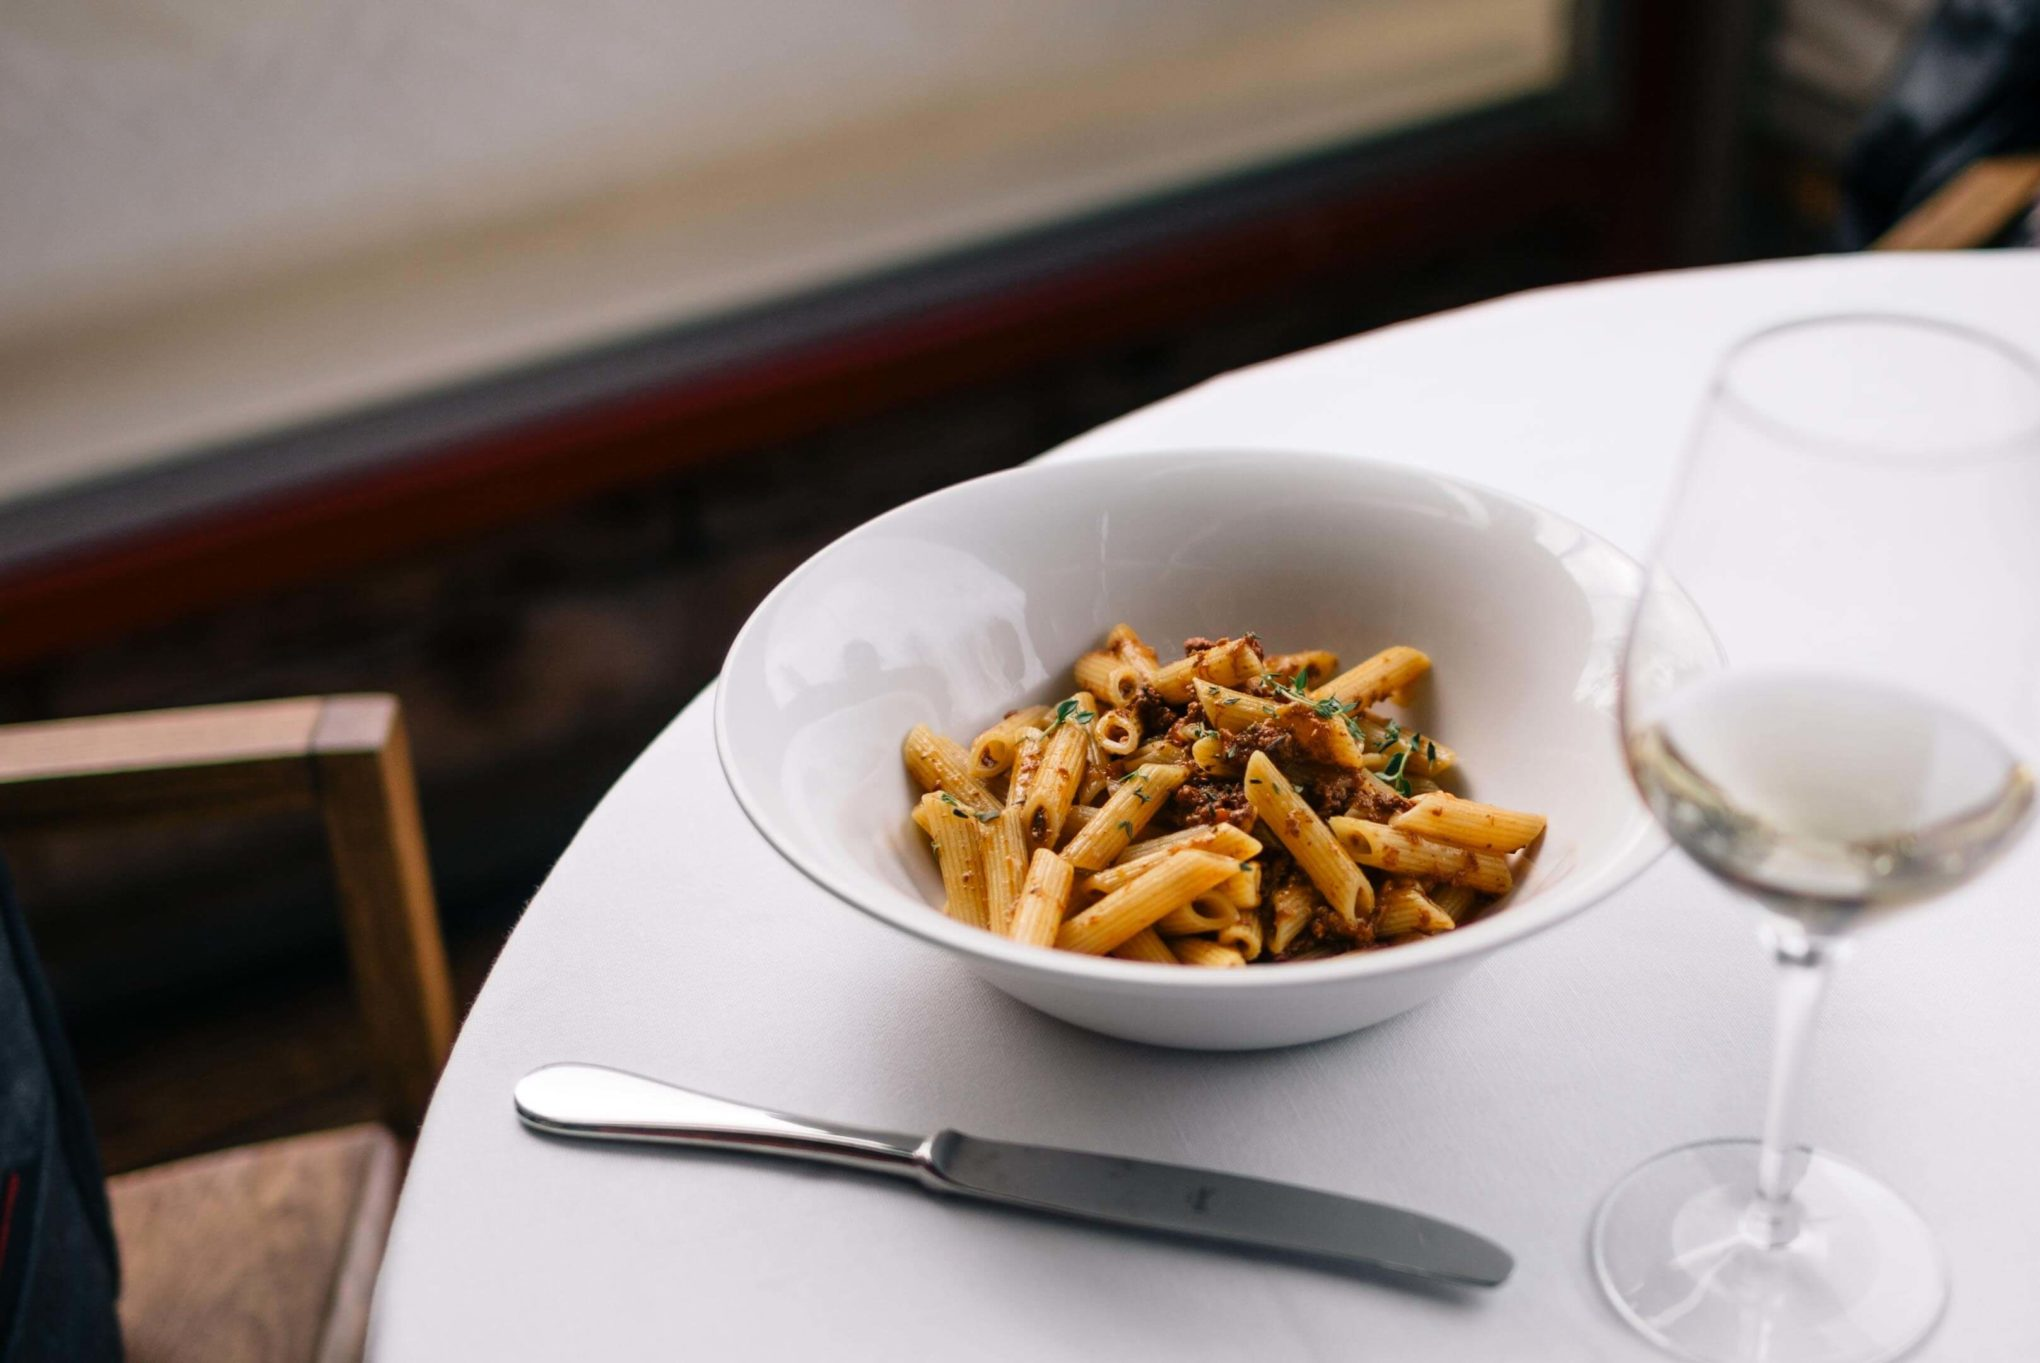 Beautiful deer ragu pasta at Erba Brusca for lunch just outside of Milan, Italy - The Taste SF